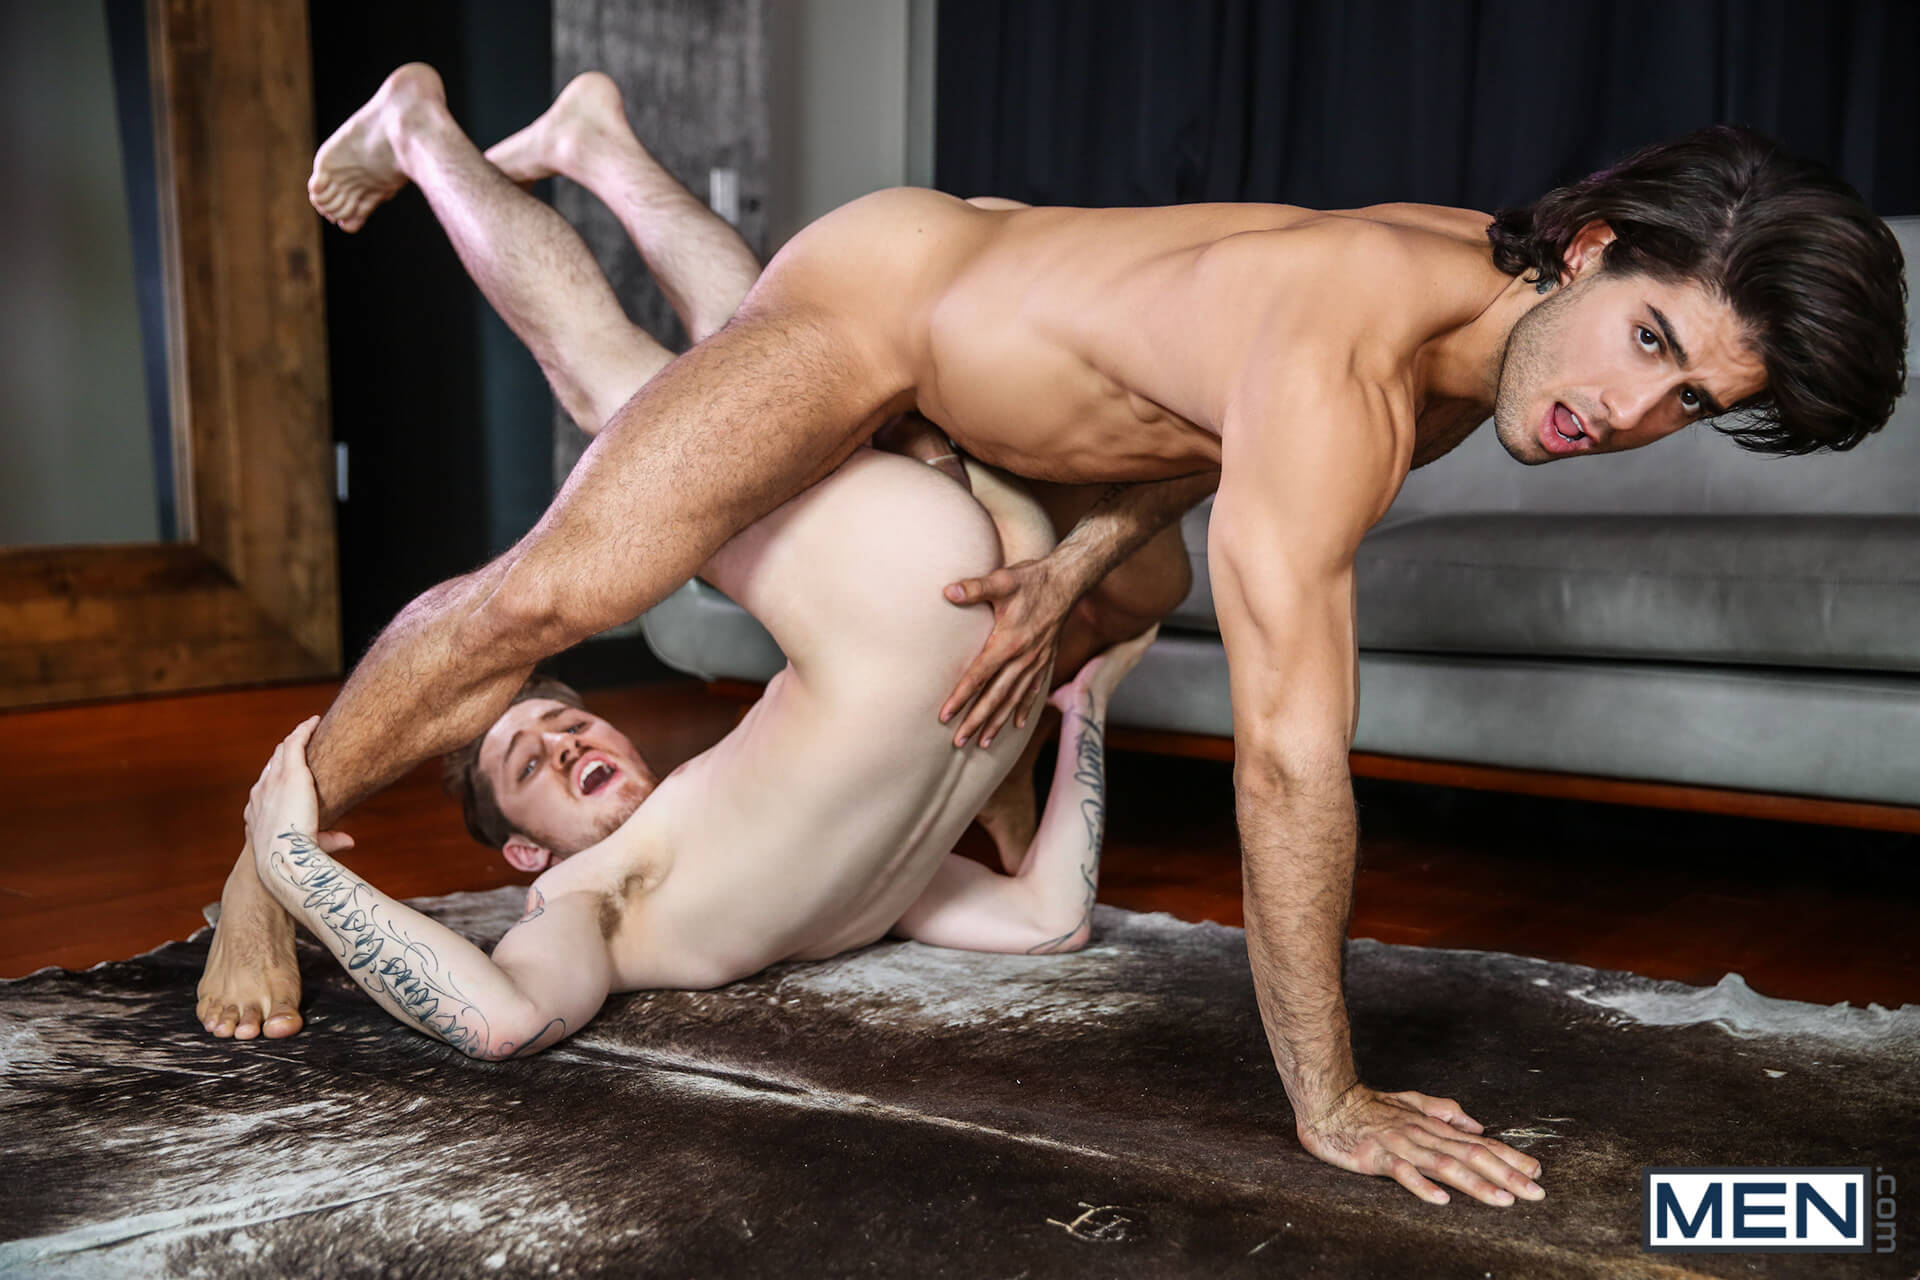 MEN.COM » Drill My Hole » Flexible Fuck » Diego Sans » Zak Bishop